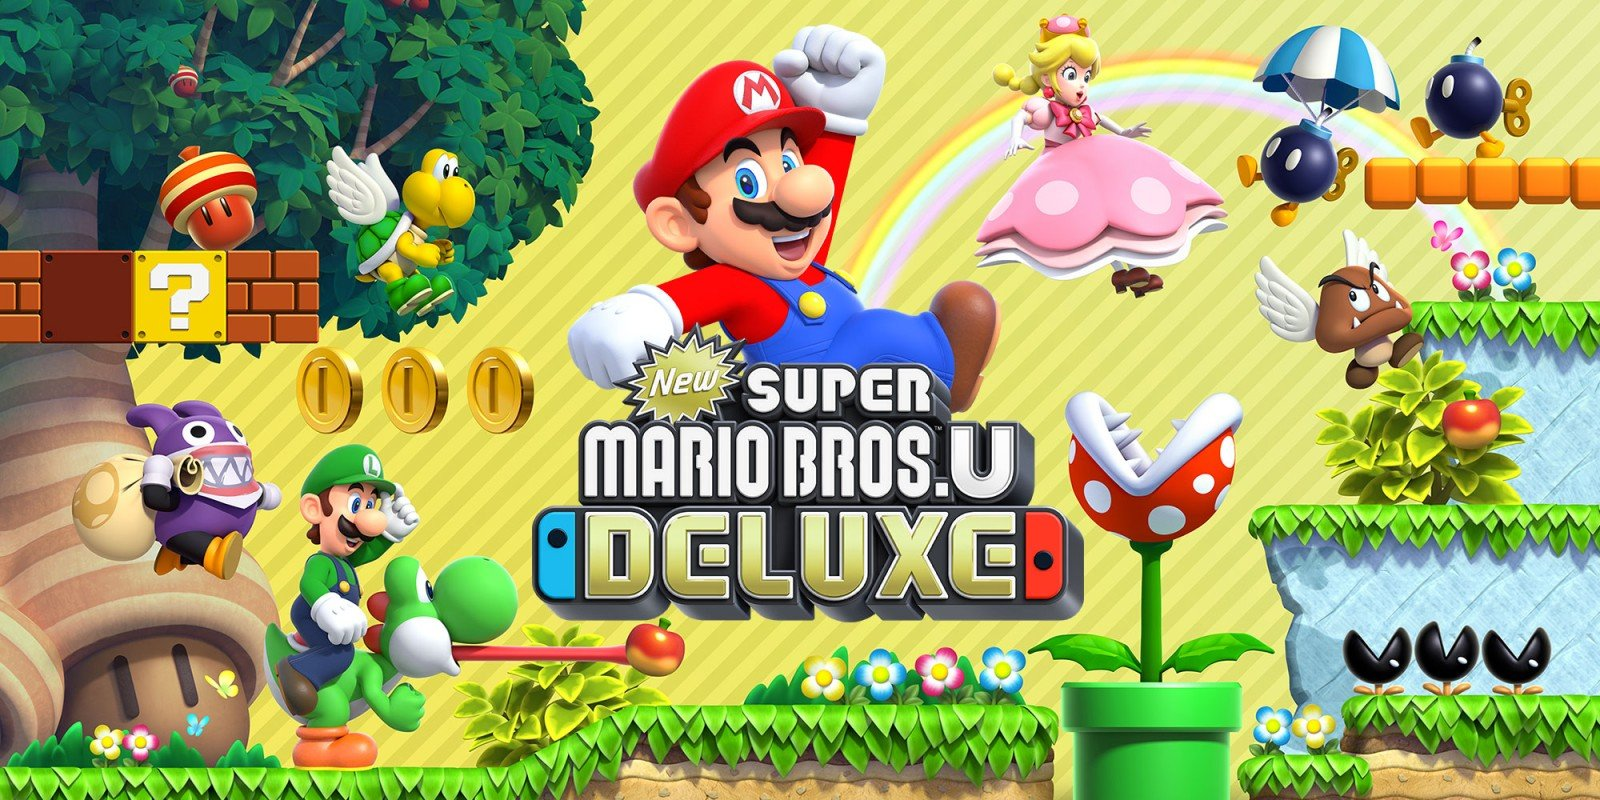 Nintendo Switch Upcoming Games 2020.New Super Mario Bros U Deluxe Approval Sets The Stage For